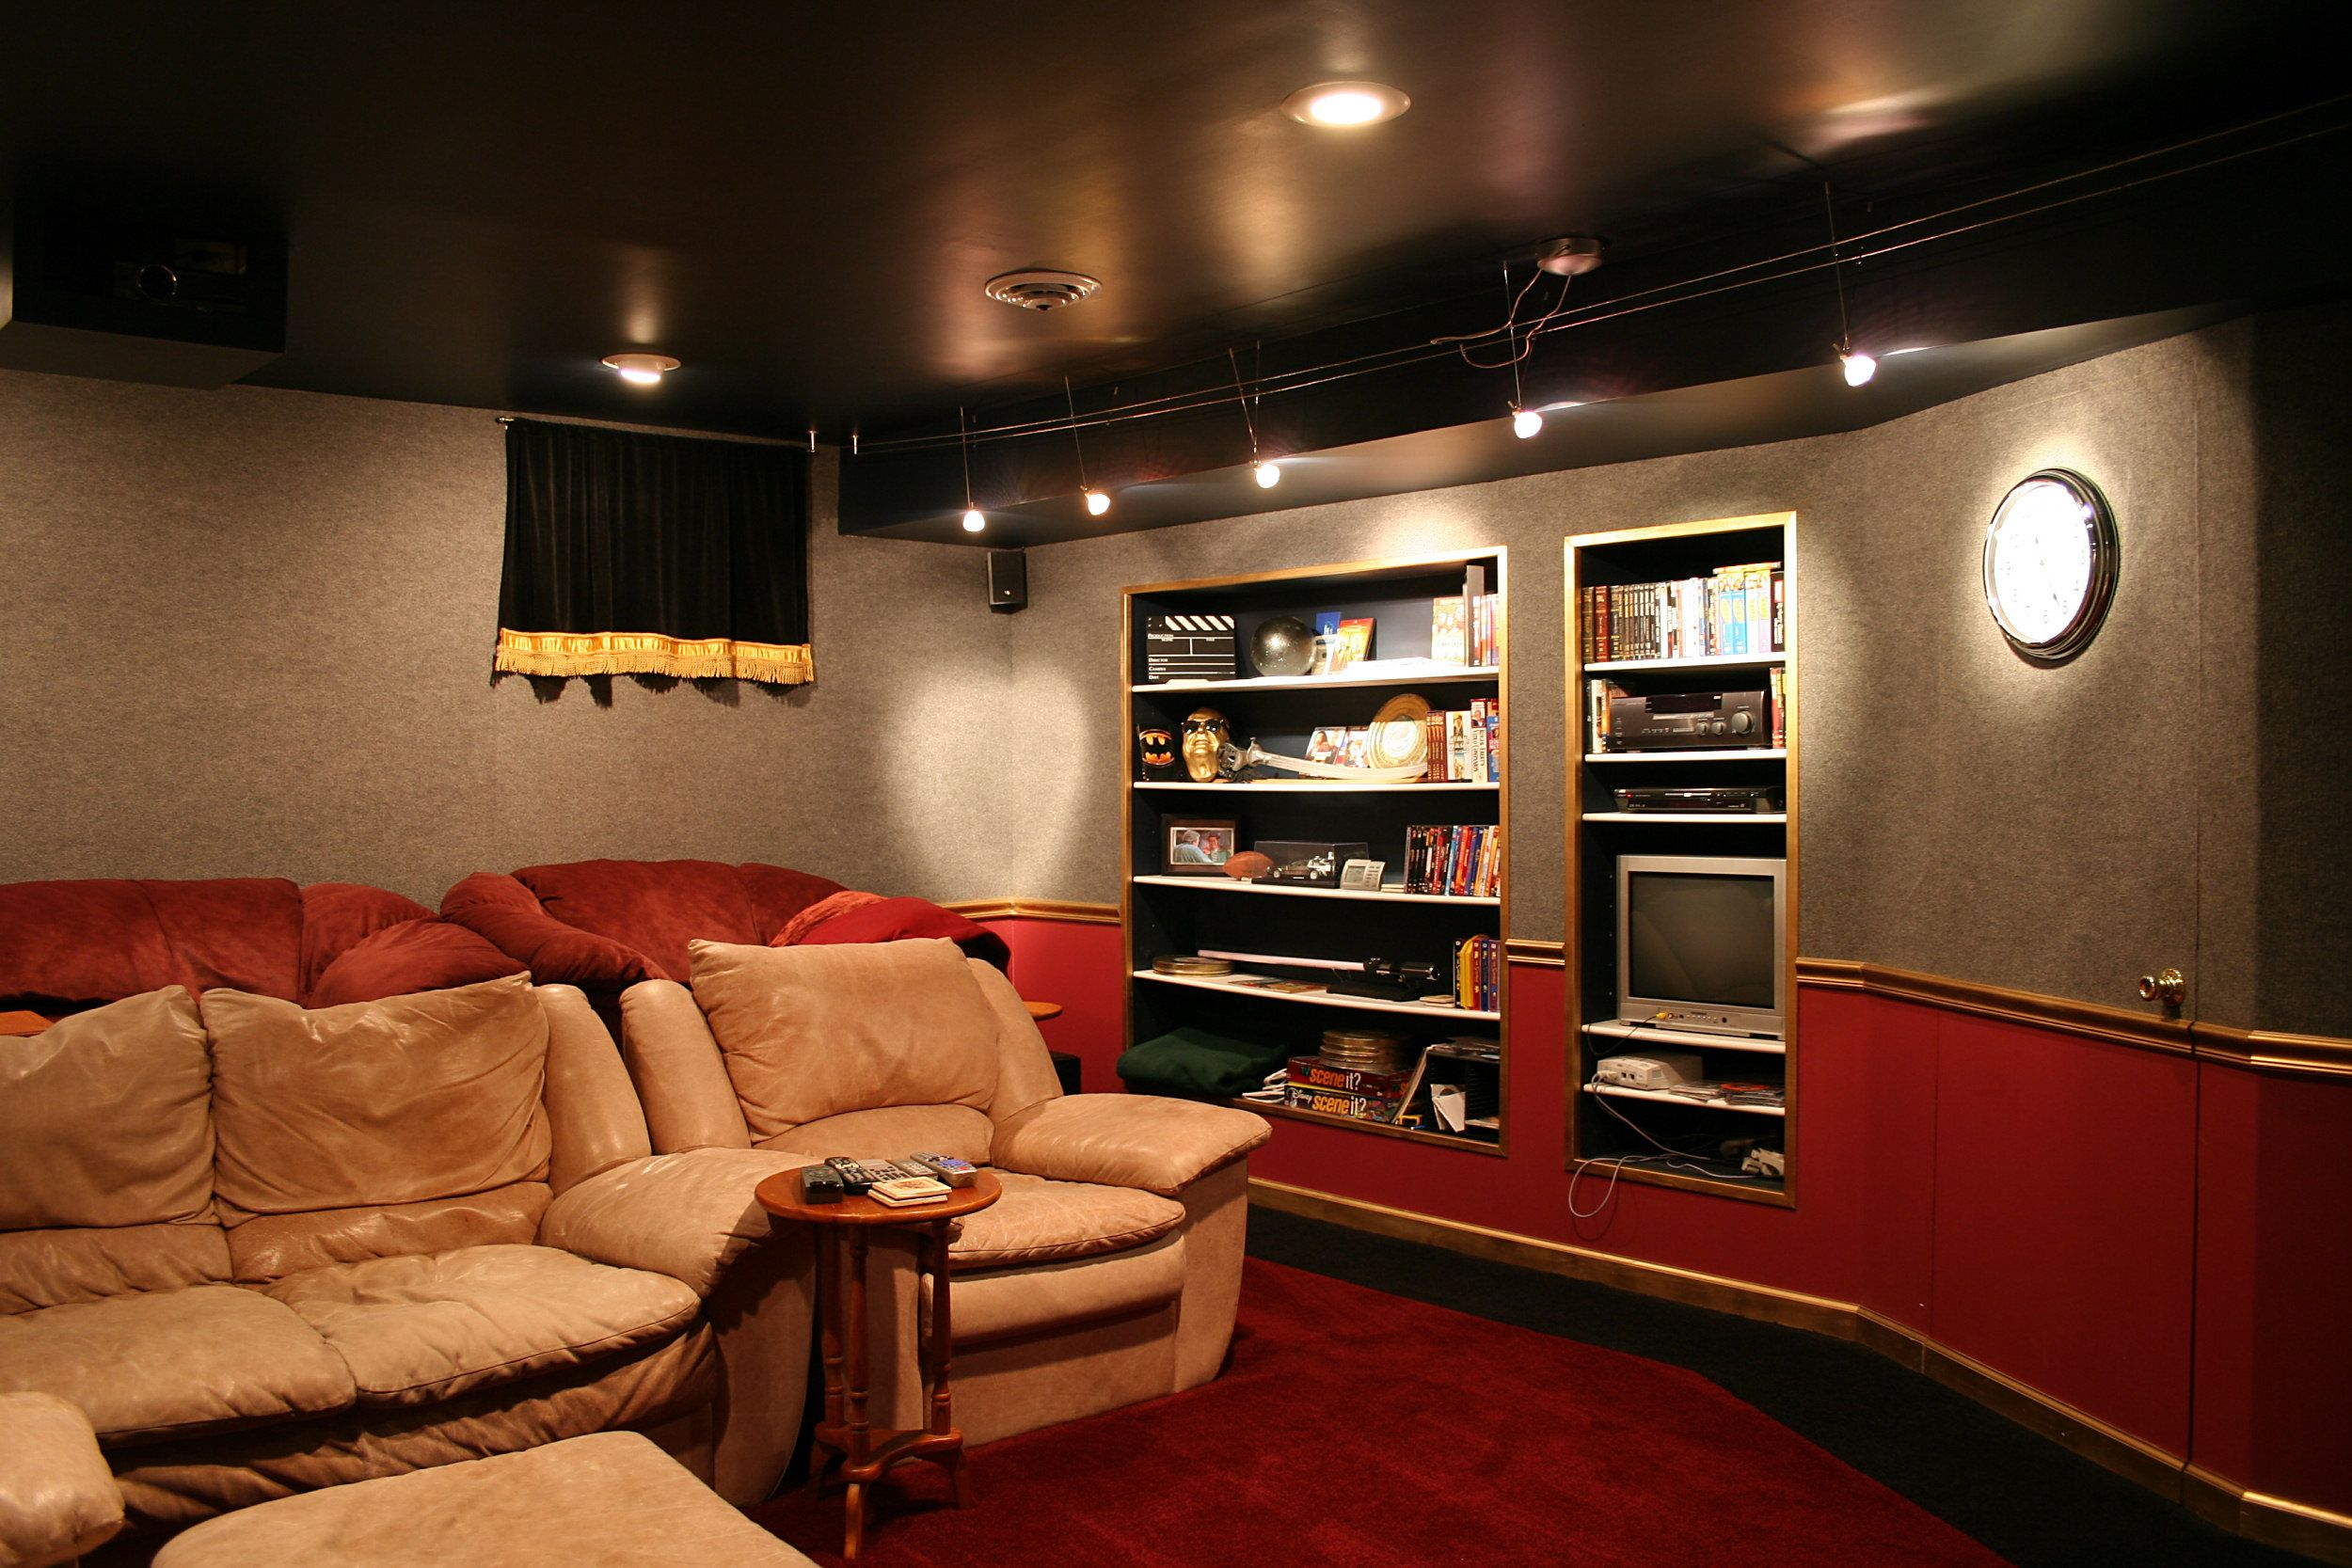 Perfect Decorating Your Basement Media Room Needs Some Planning To Create The ...  Home Décor Savvy Movie Fans Everywhere Have Decided To Take .